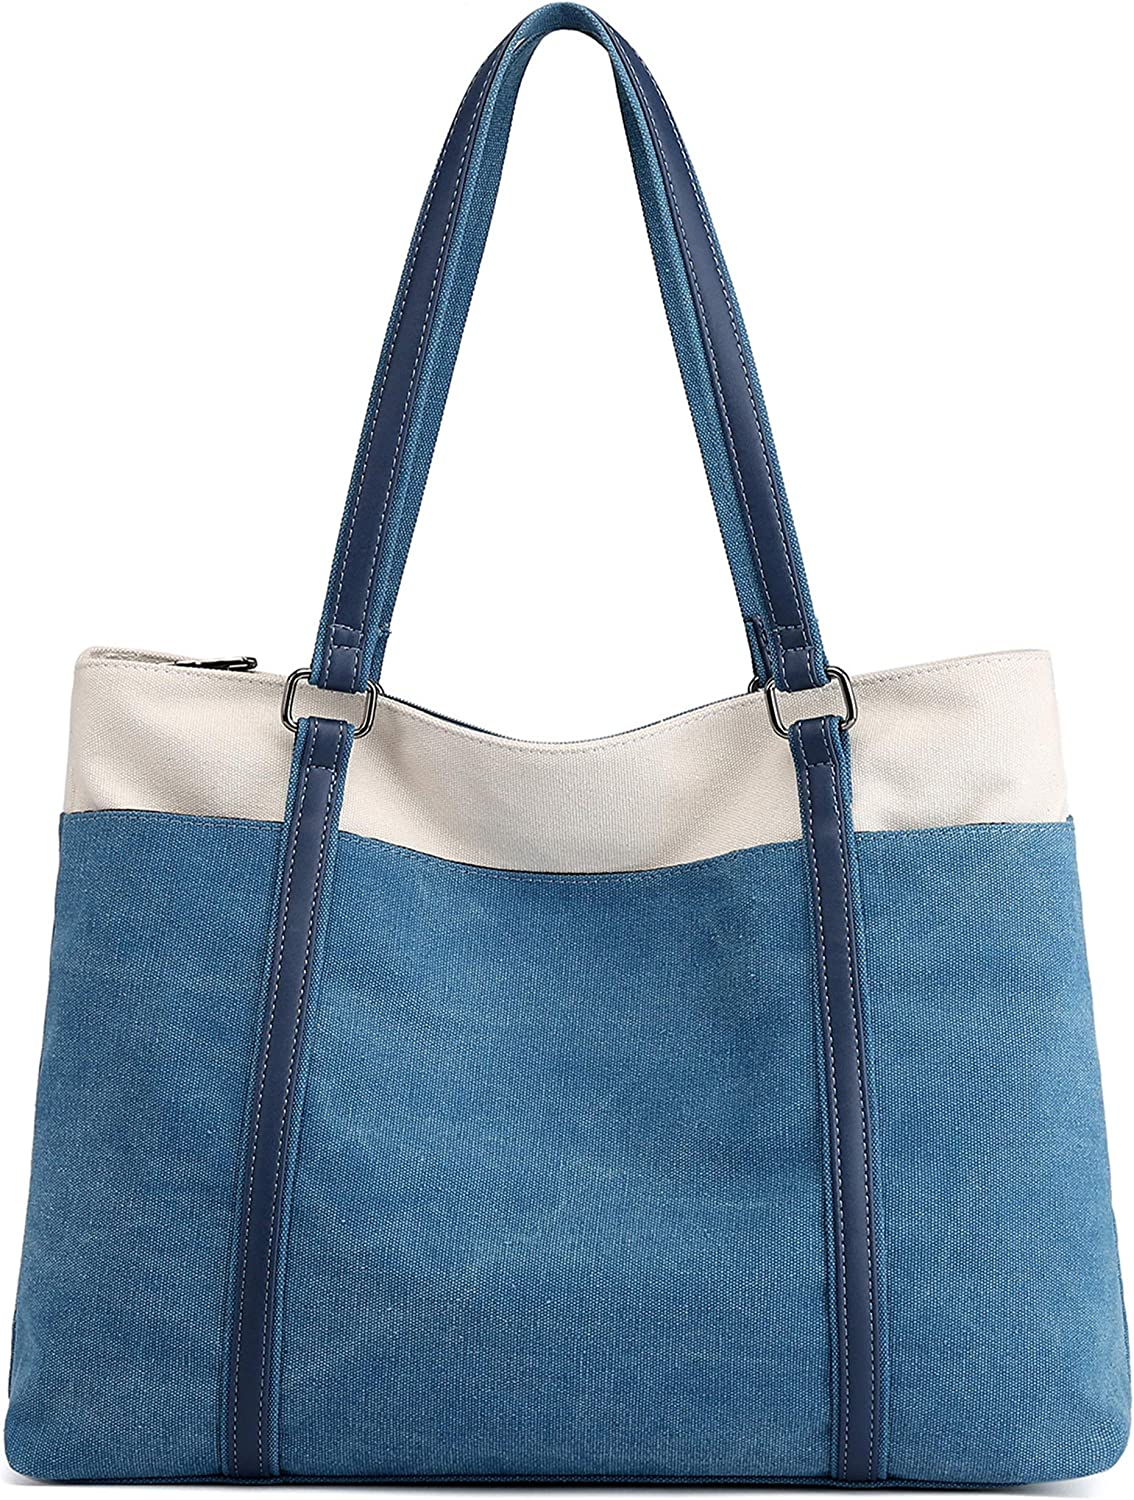 Wearigoo Laptop Tote Bag for Women 15.6 Inch Canvas Large Shoulder Purse Bags with Zipper and Pockets